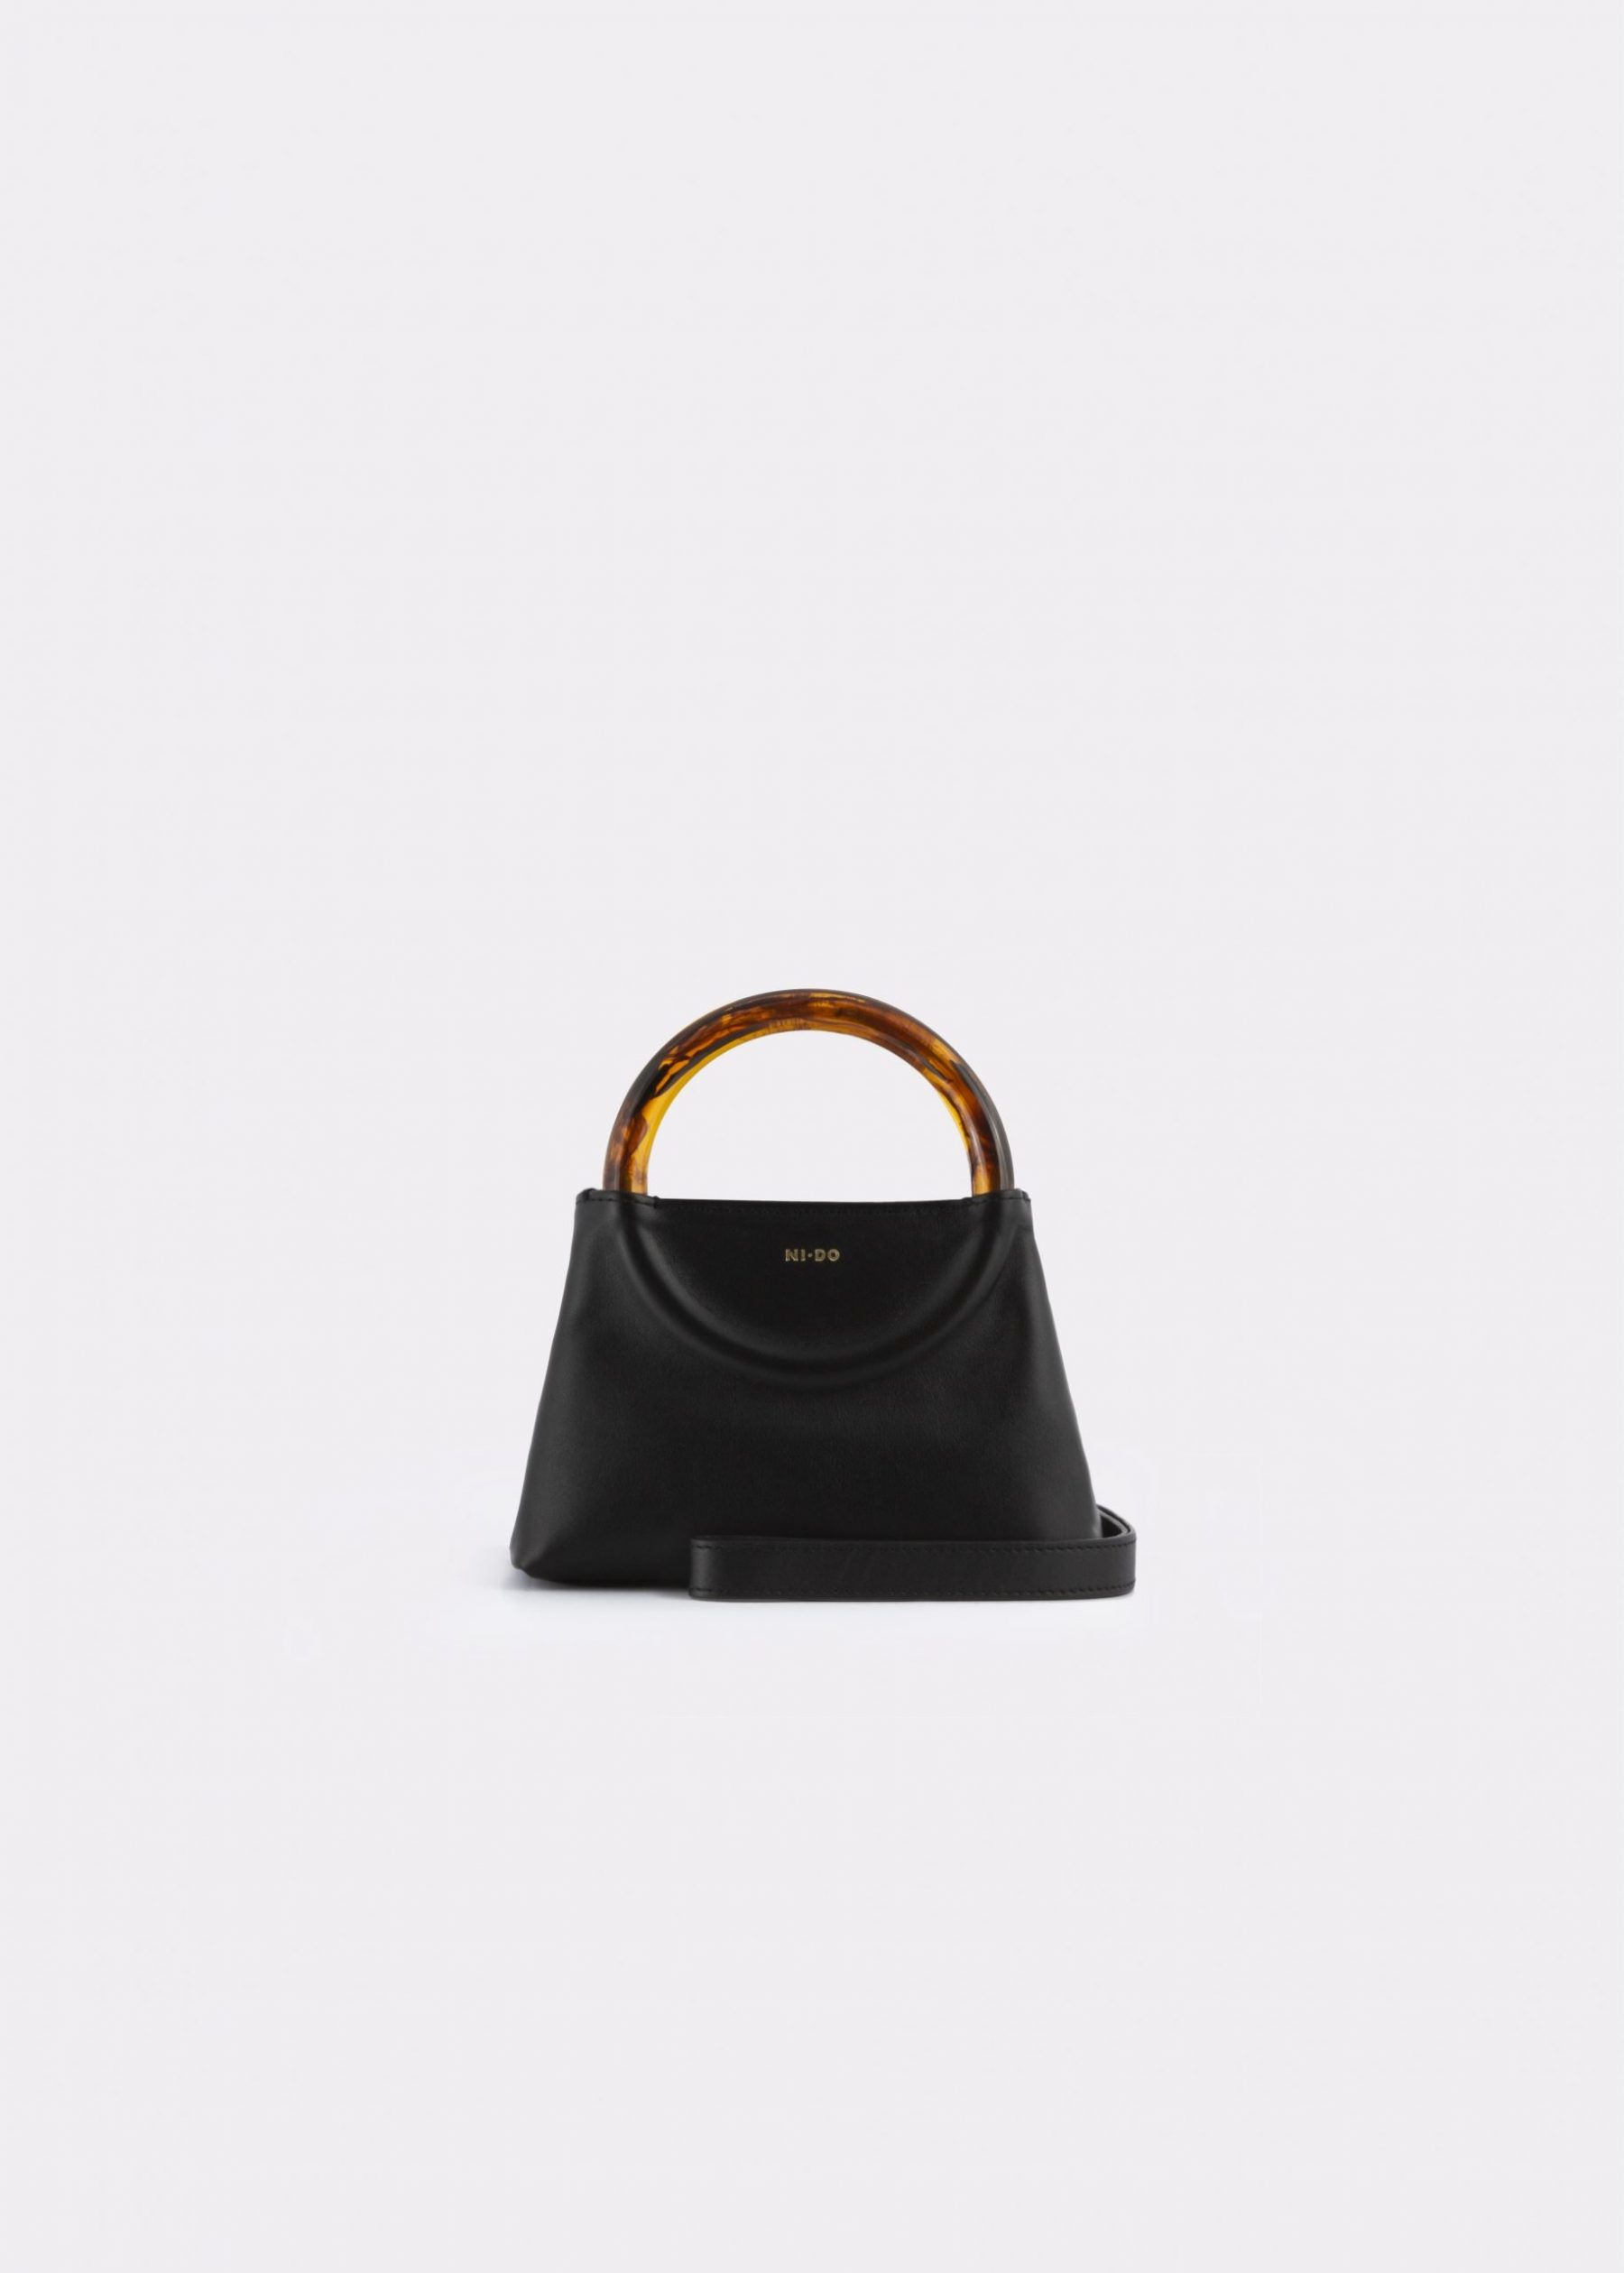 NIDO Bolla Micro bag black leather Amber_shoulder strap view